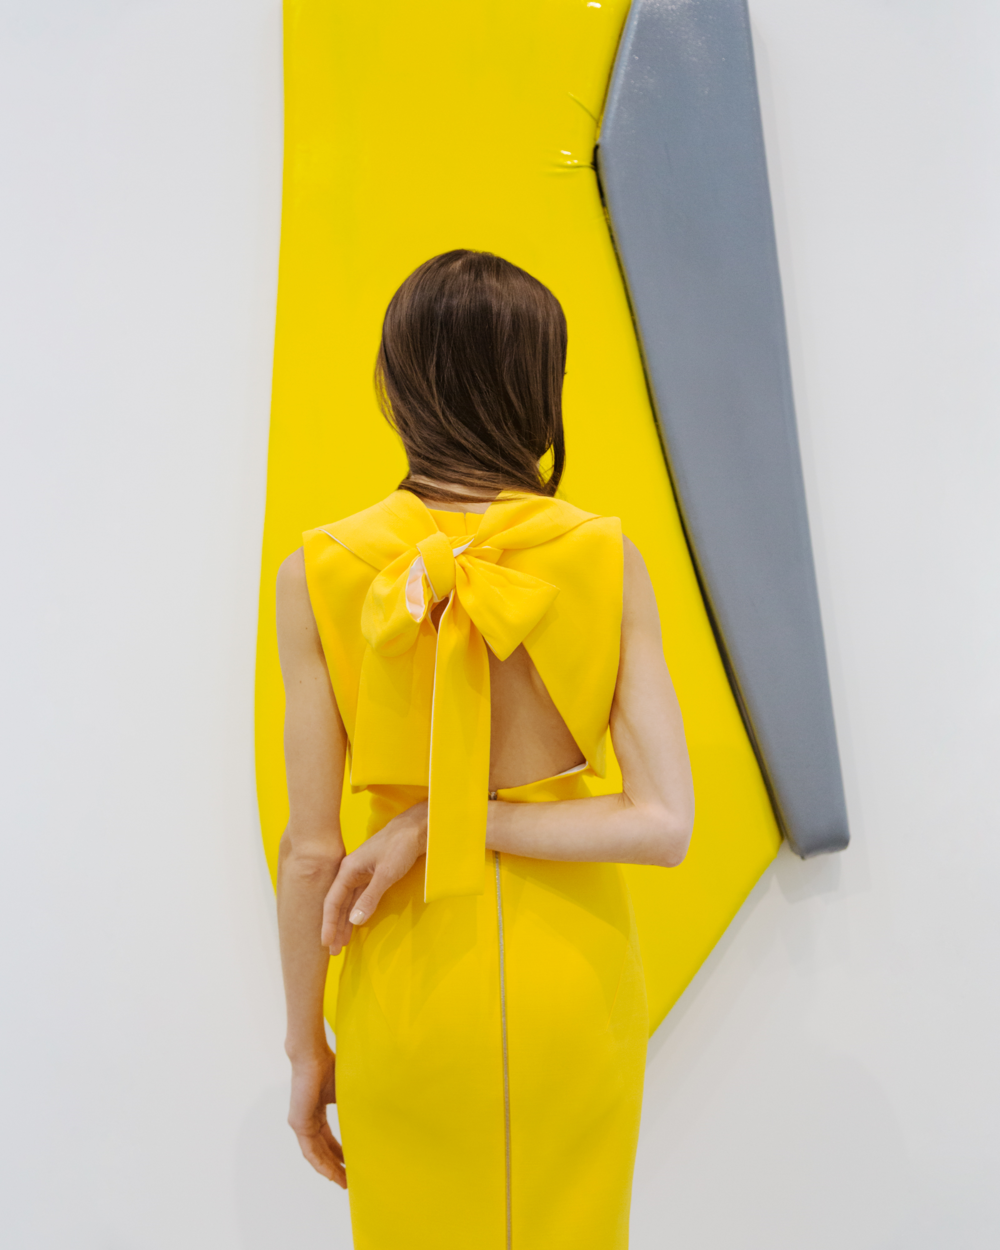 Pari Ehsan at Justin Adian - Skarstedt Gallery wearing Victoria Beckham, Photo by Tylor Hóu.